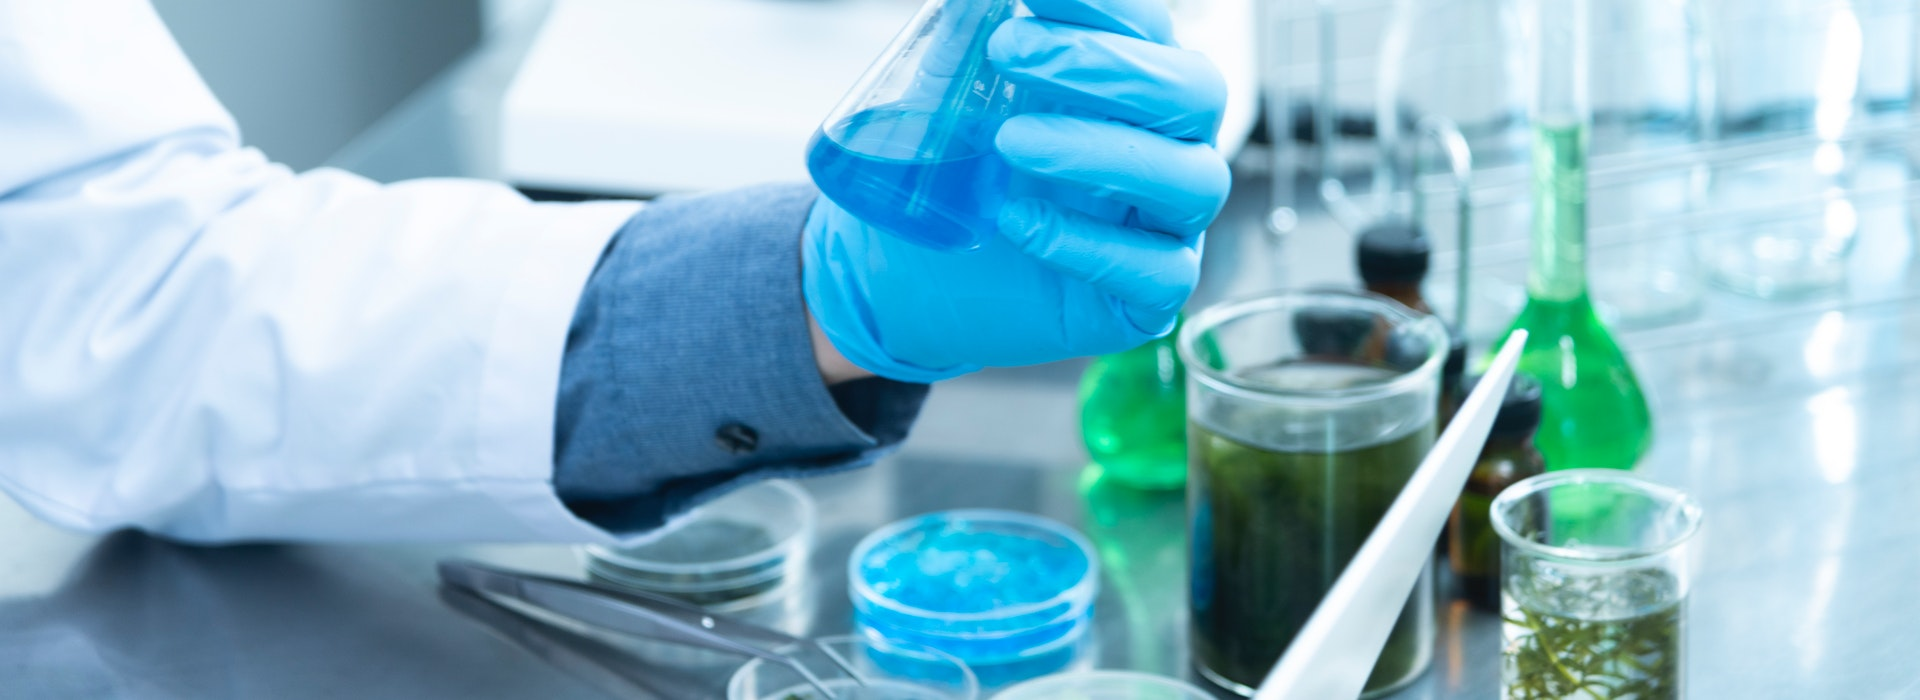 Photo of a blue gloved hand holding a chemical testube